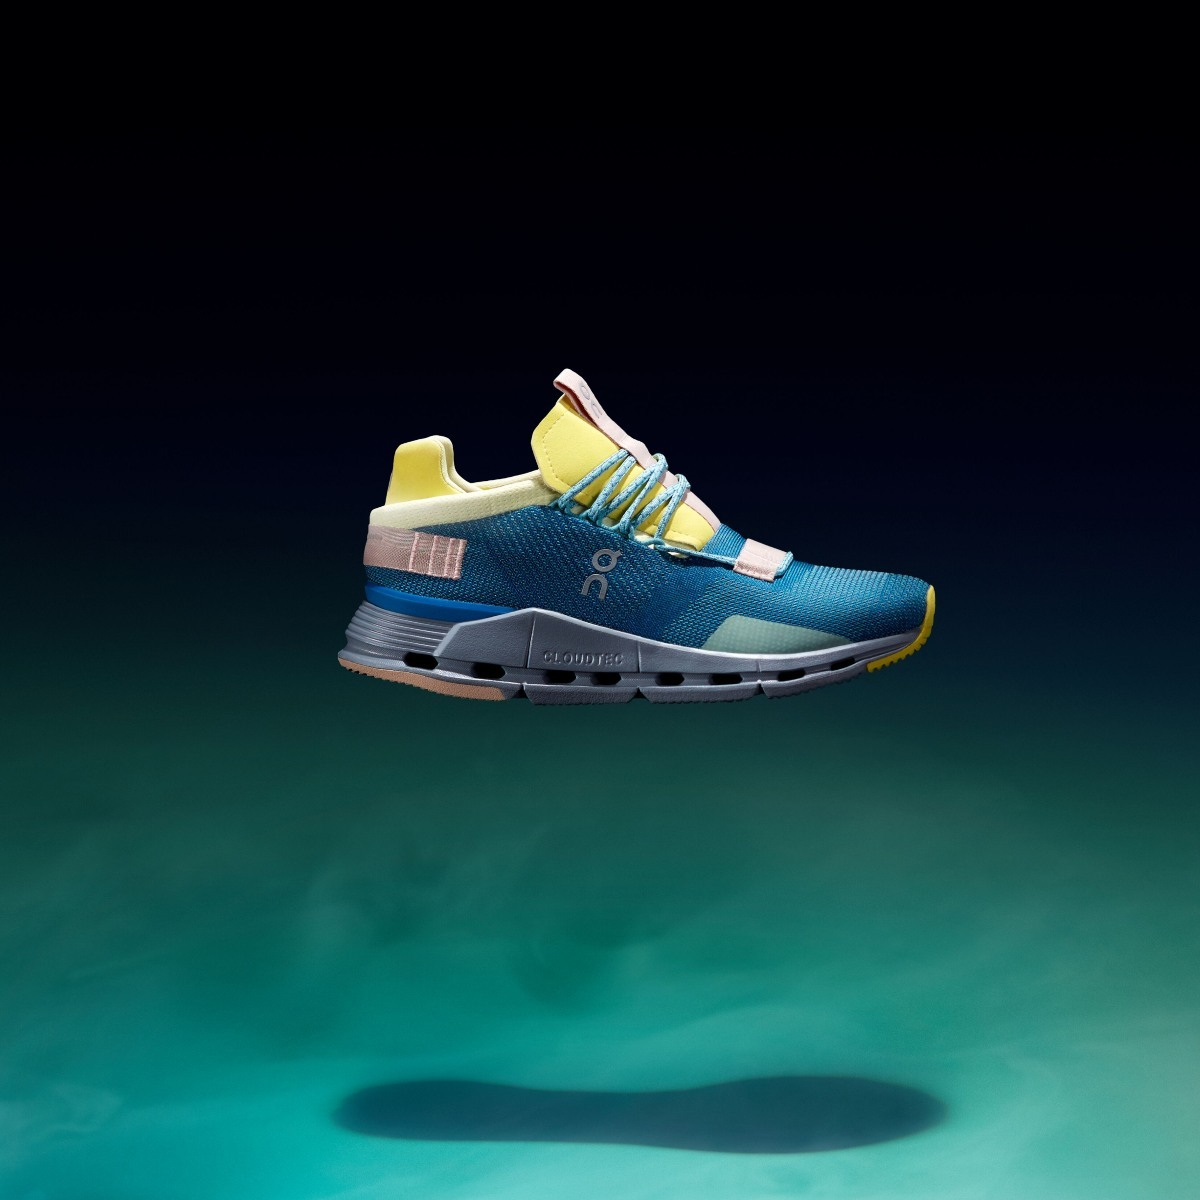 limited-edition sneaker